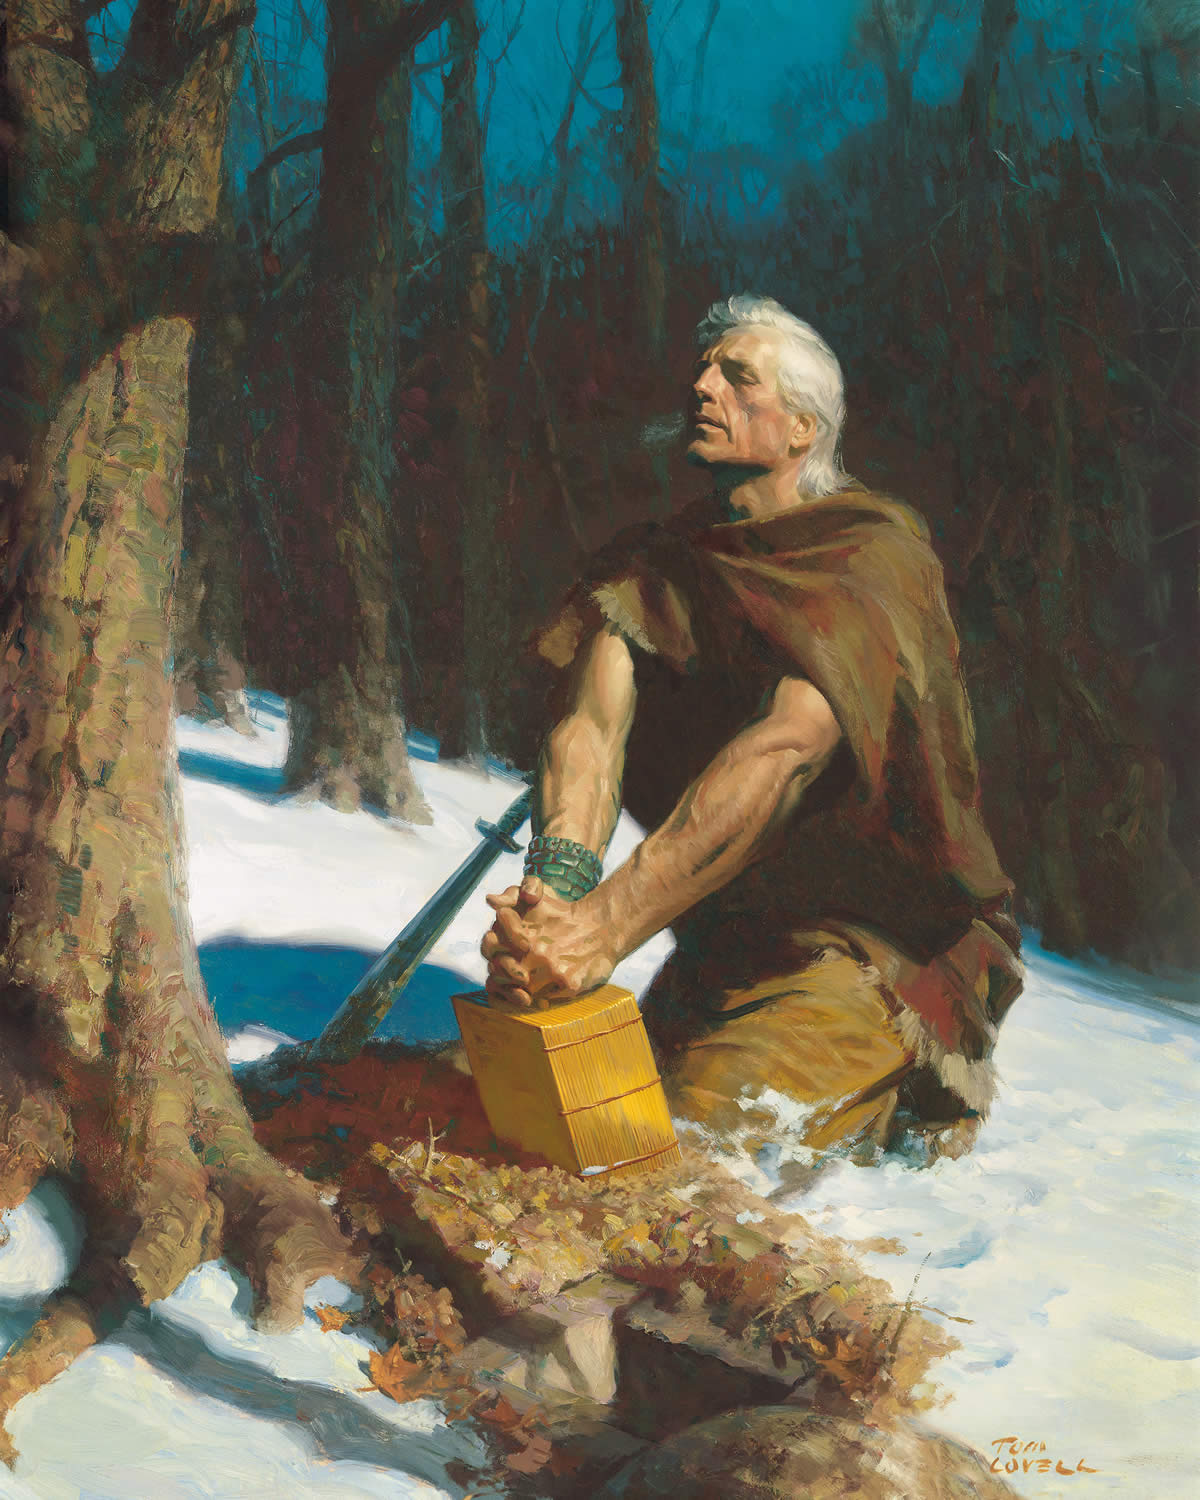 Prophet Moroni buries the sacred records of his people in the Hill Cumorah